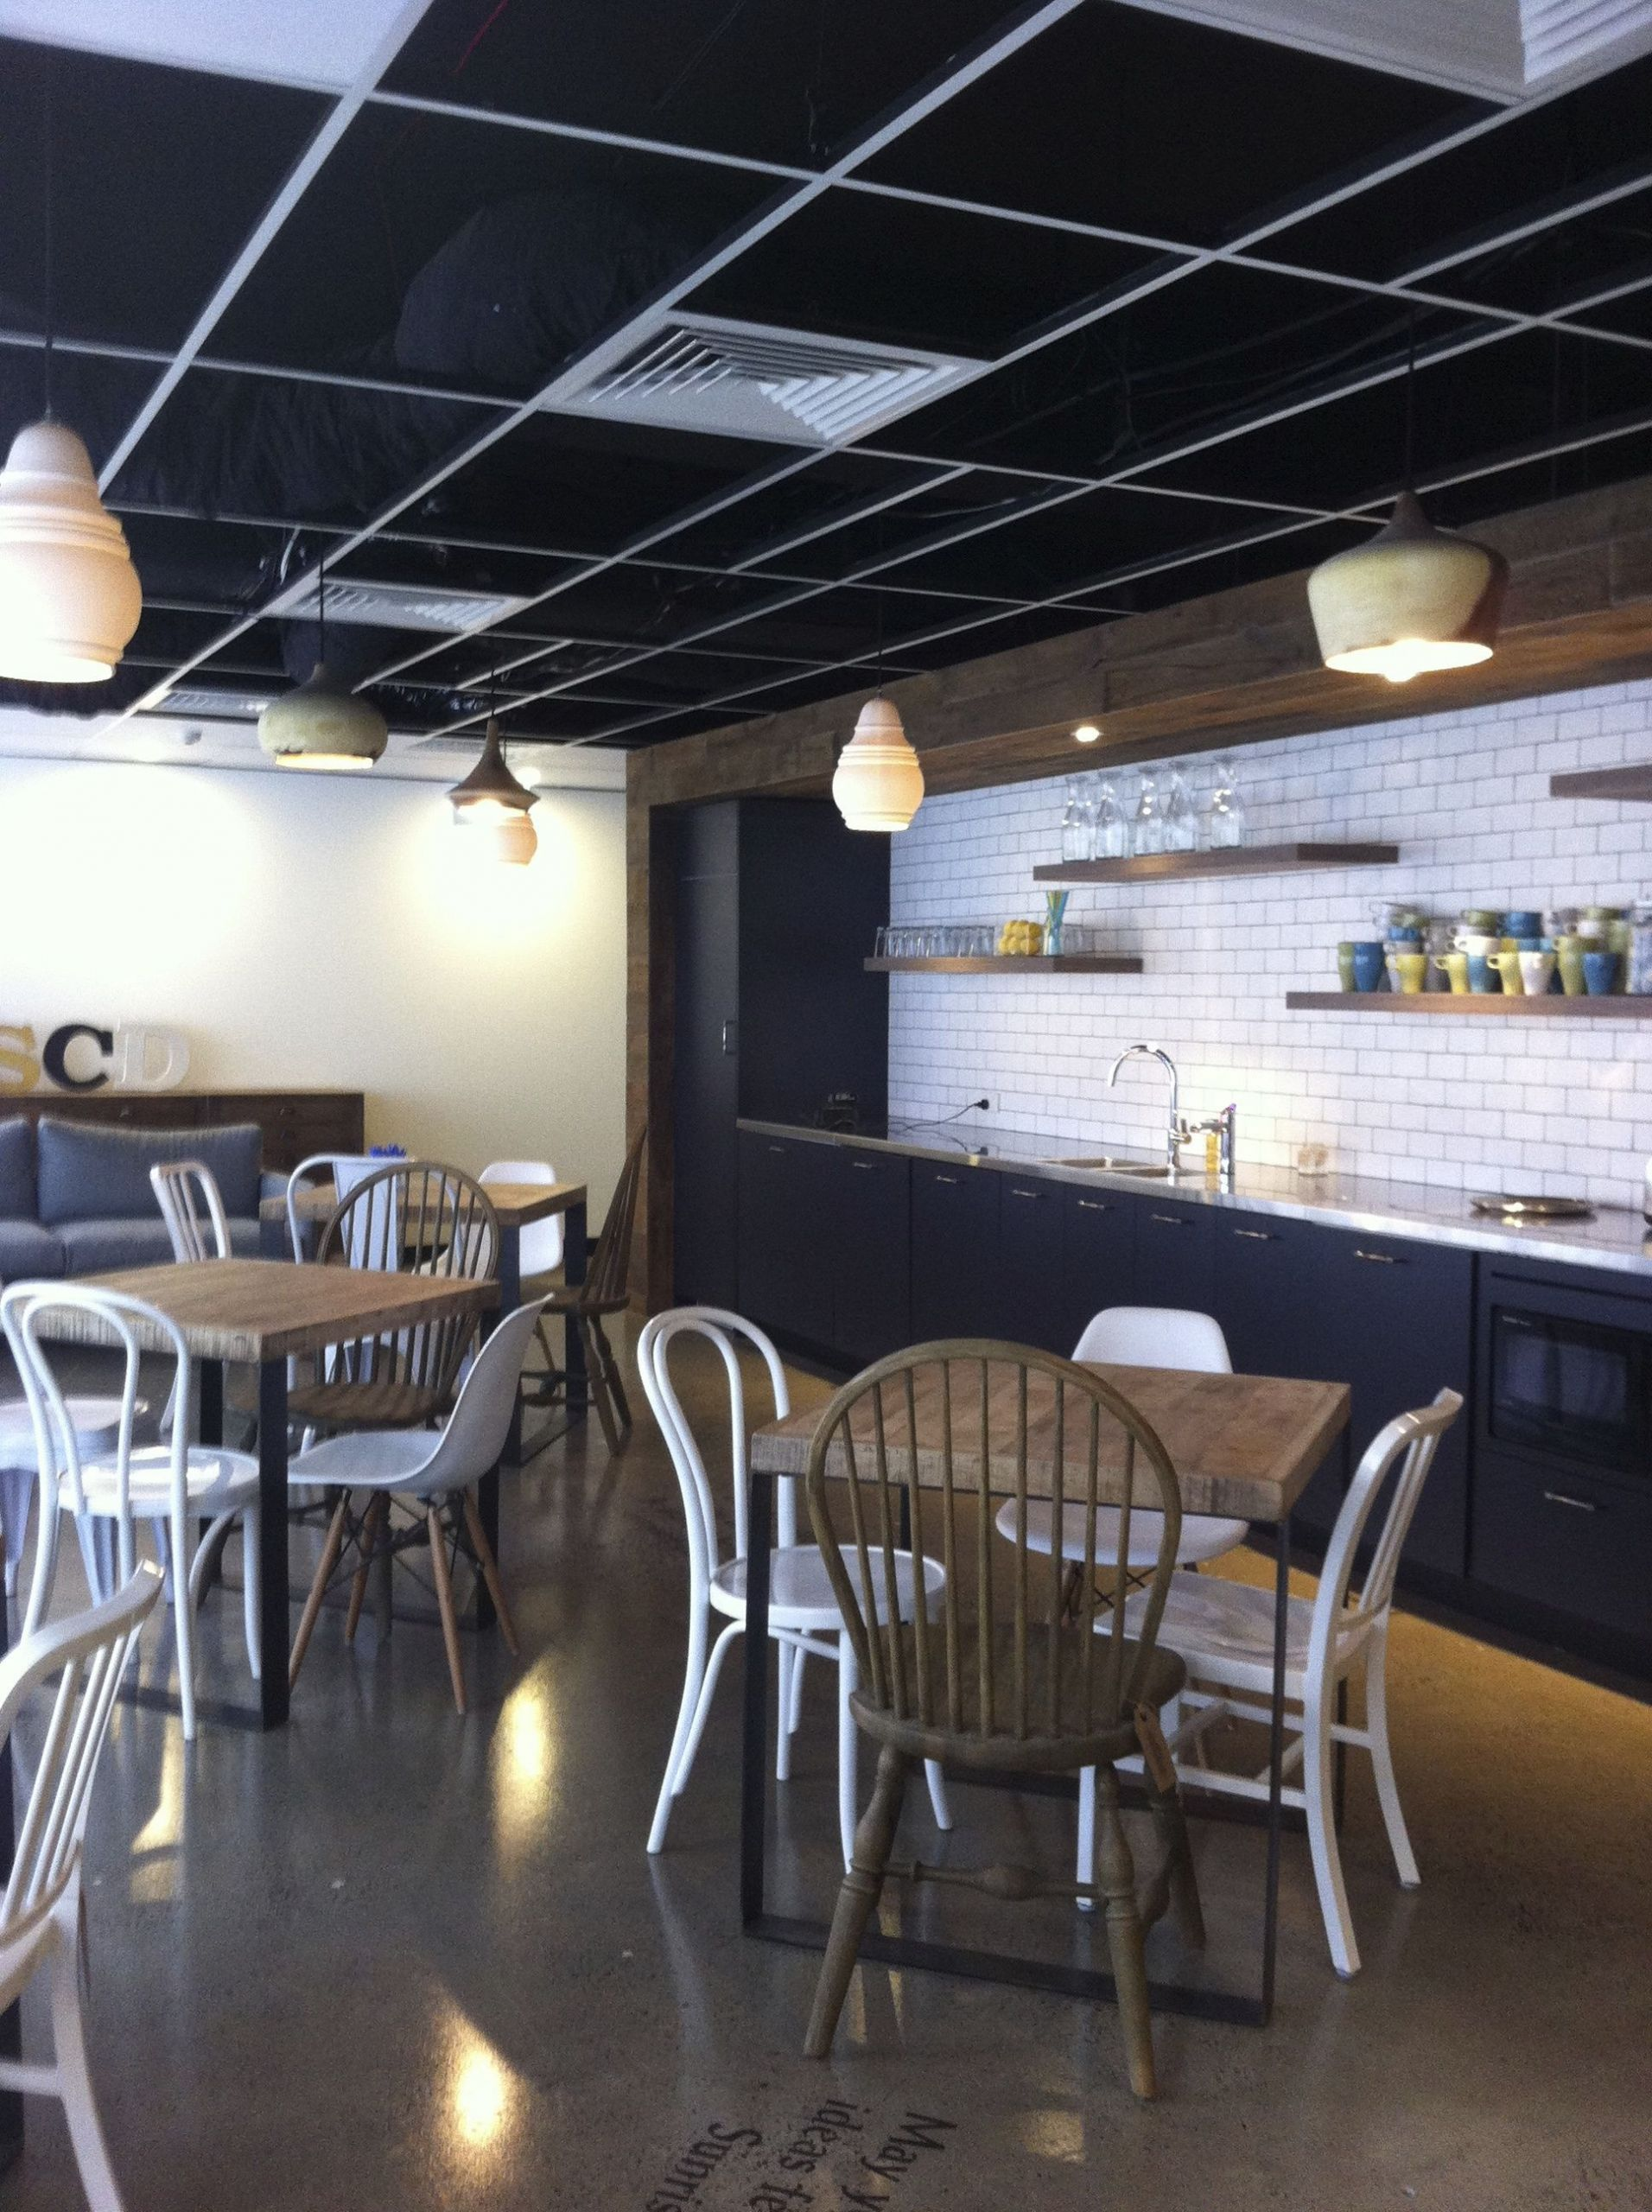 Restaurant Kitchen Ceiling Tiles  Charcoal and timber kitchen with matt subway tiles in